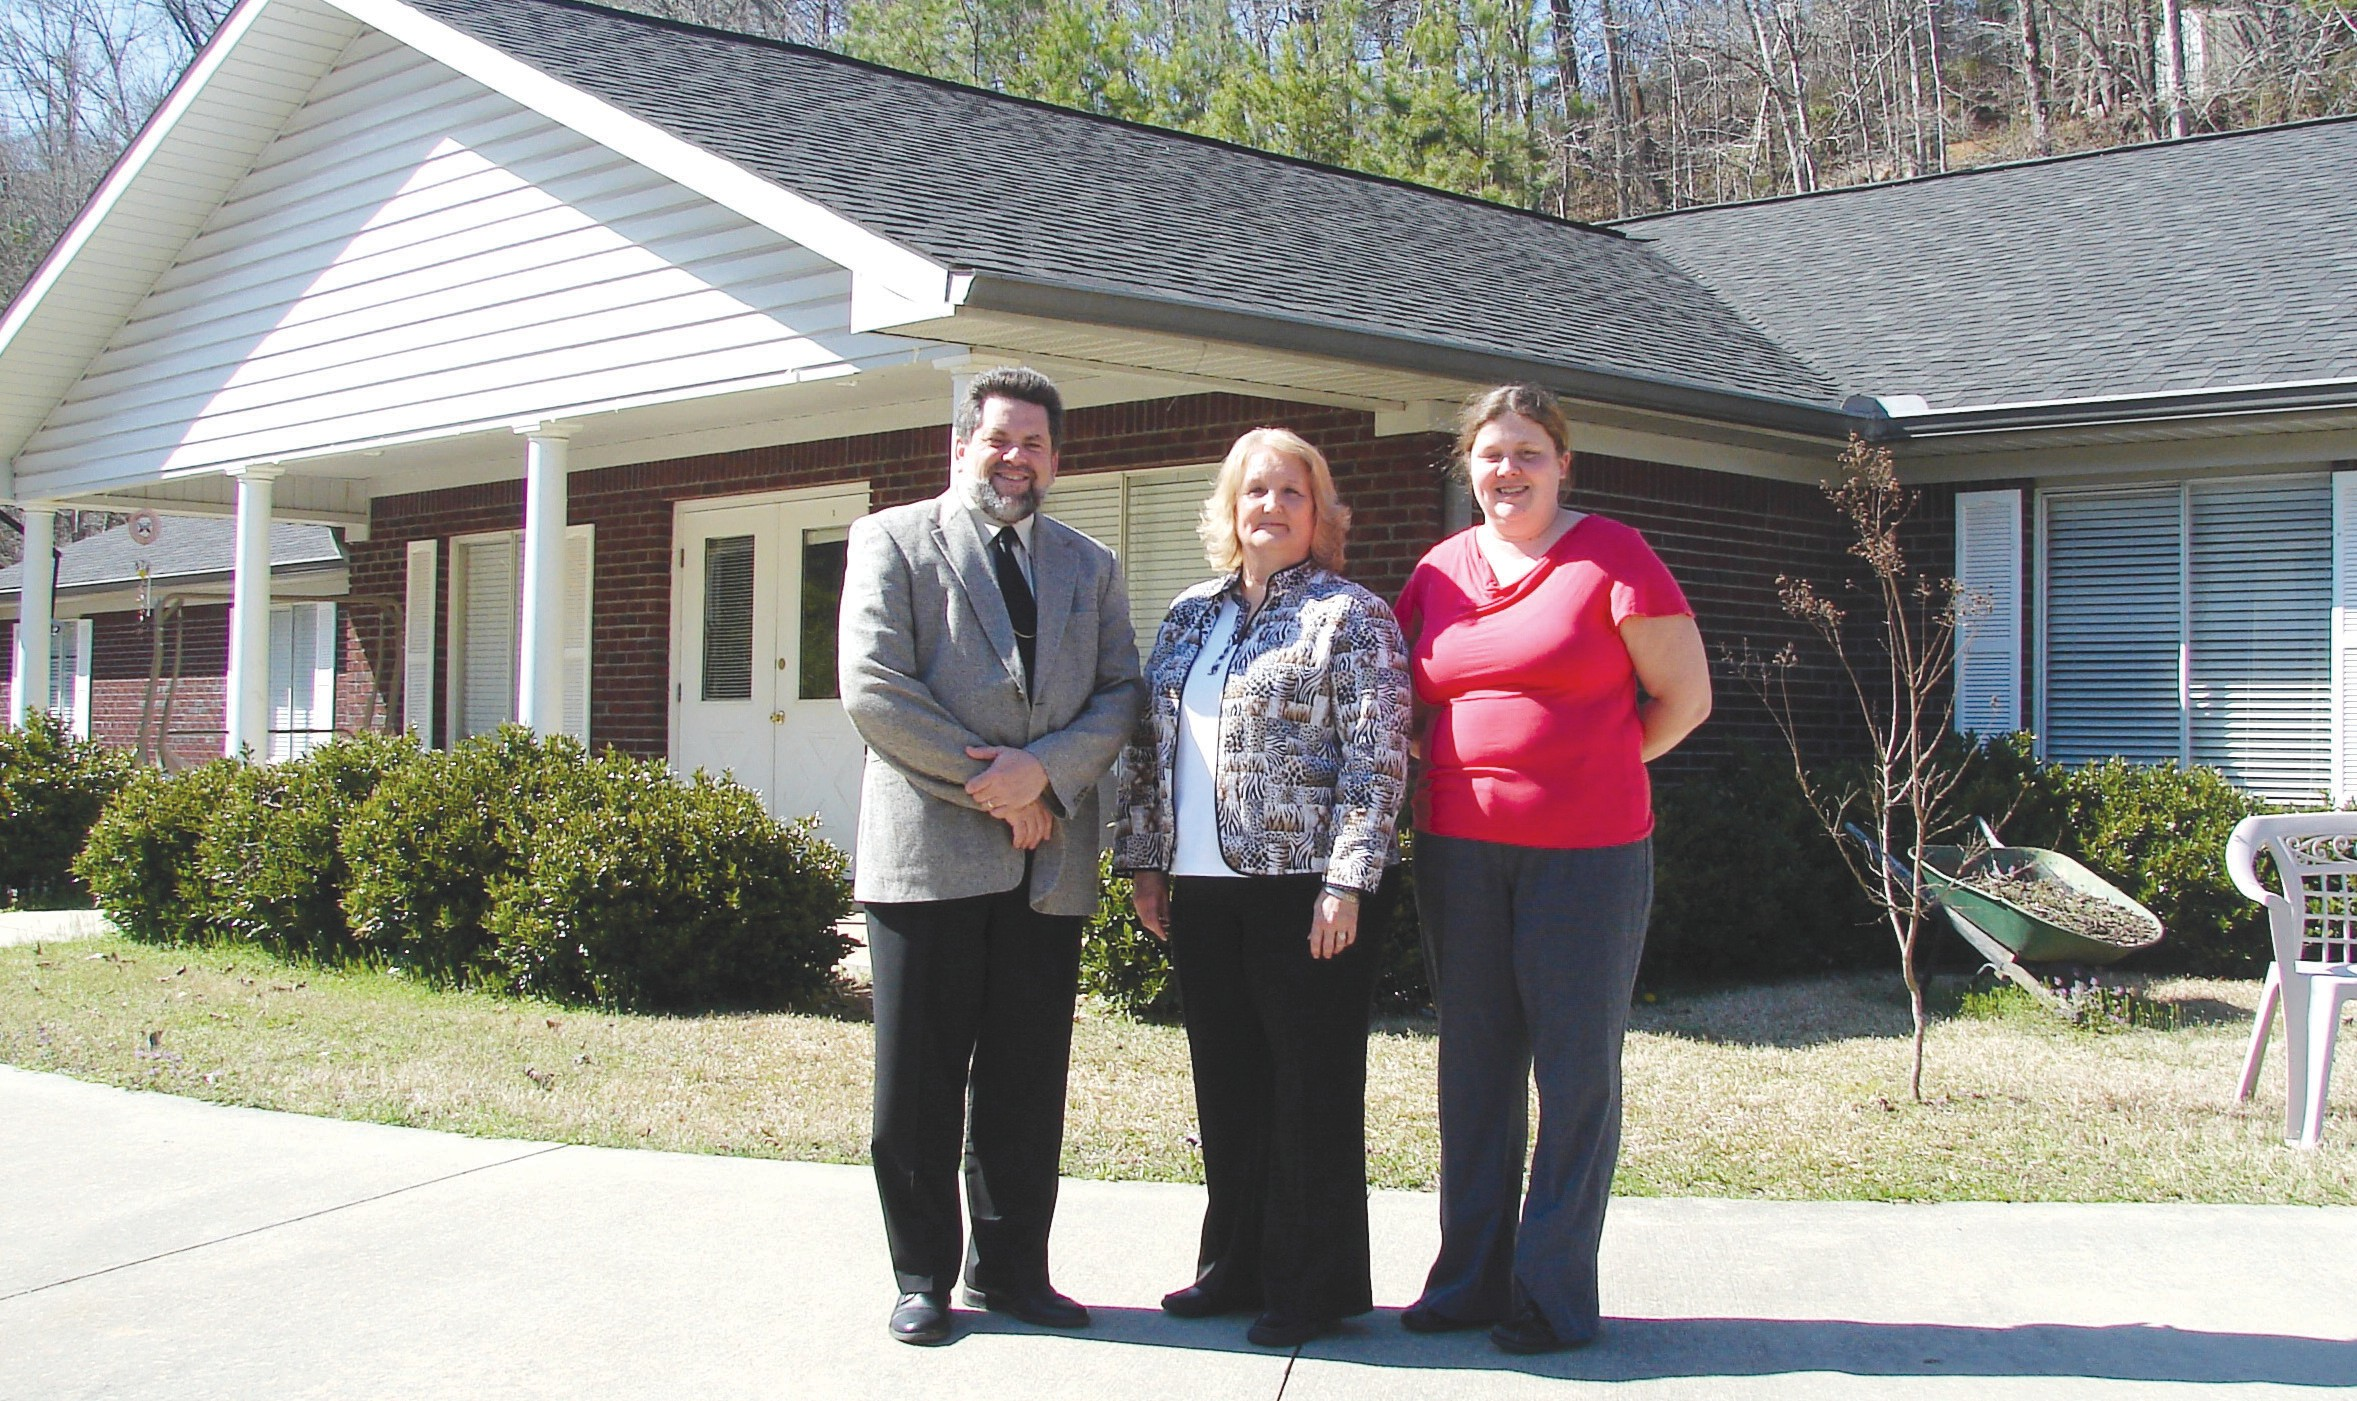 Randy Hale, vice president and program coordinator of the Alabama Youth Home, is pictured with staff members Miriam Murphree (center) and Shannon Melton.